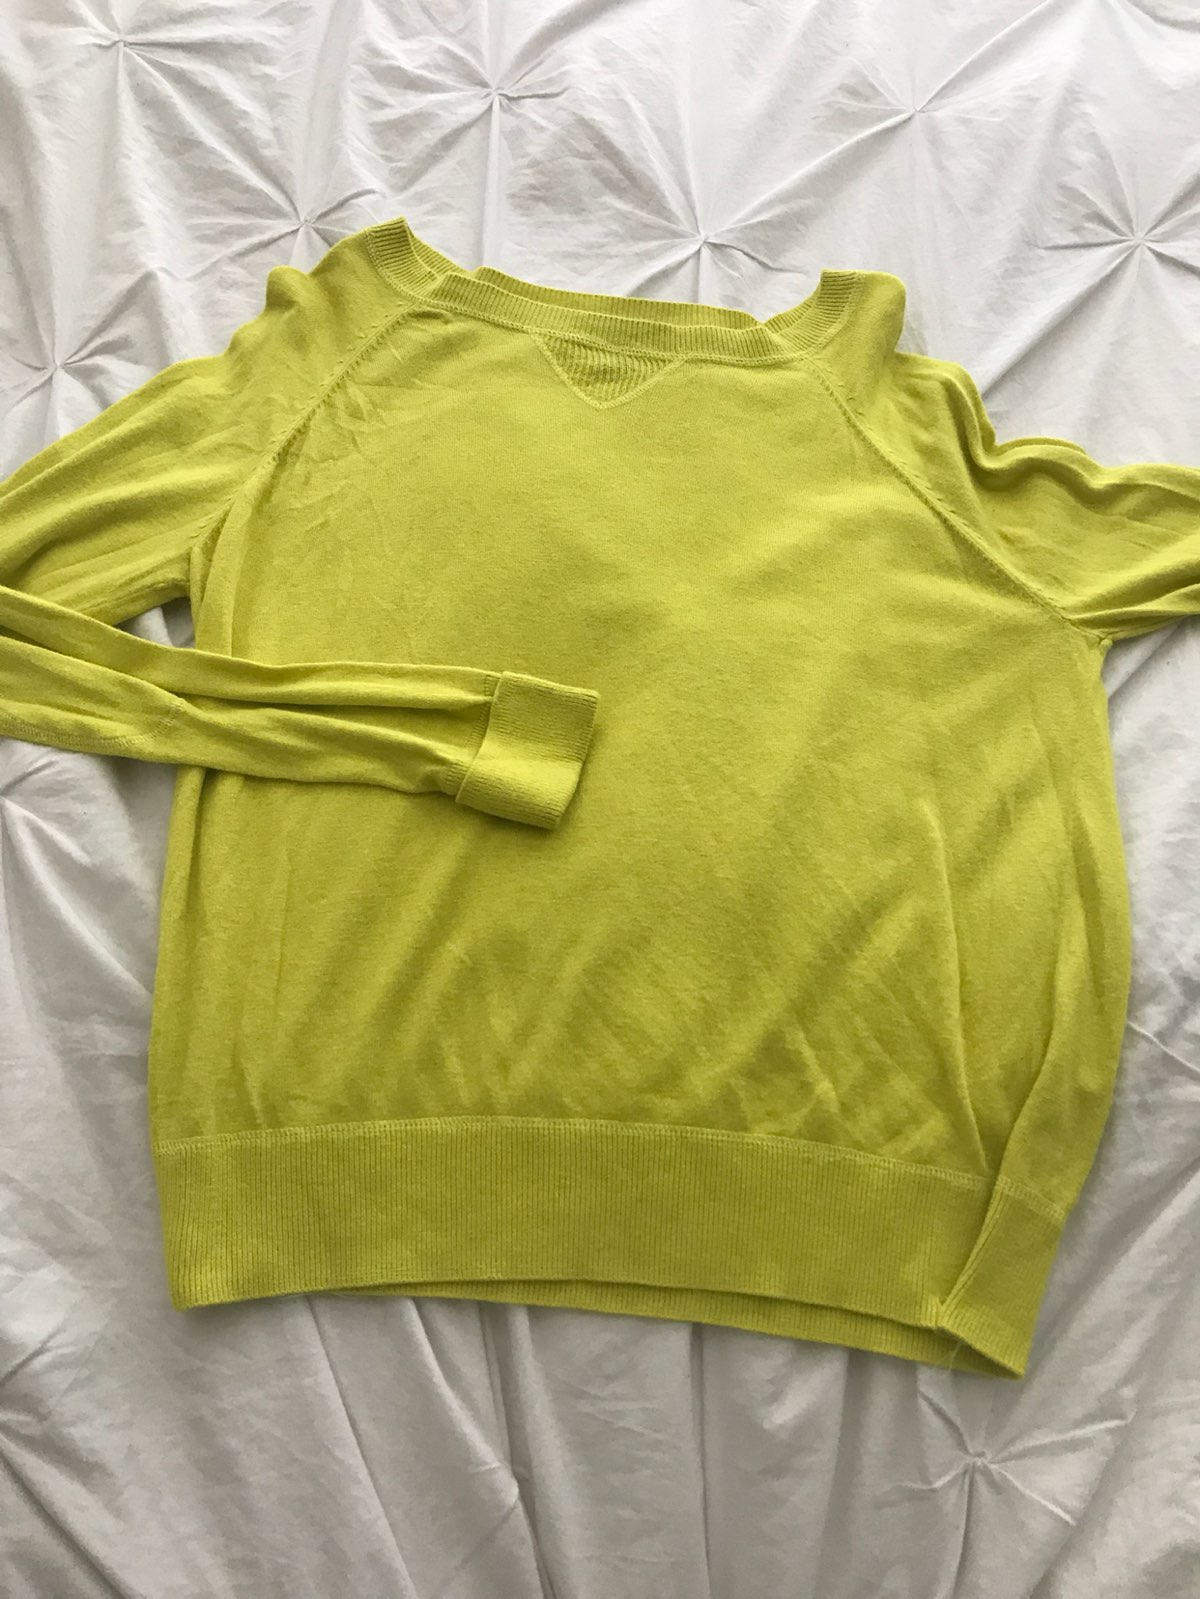 Bright Yellow Sweater - Mercari: BUY & SELL THINGS YOU LOVE